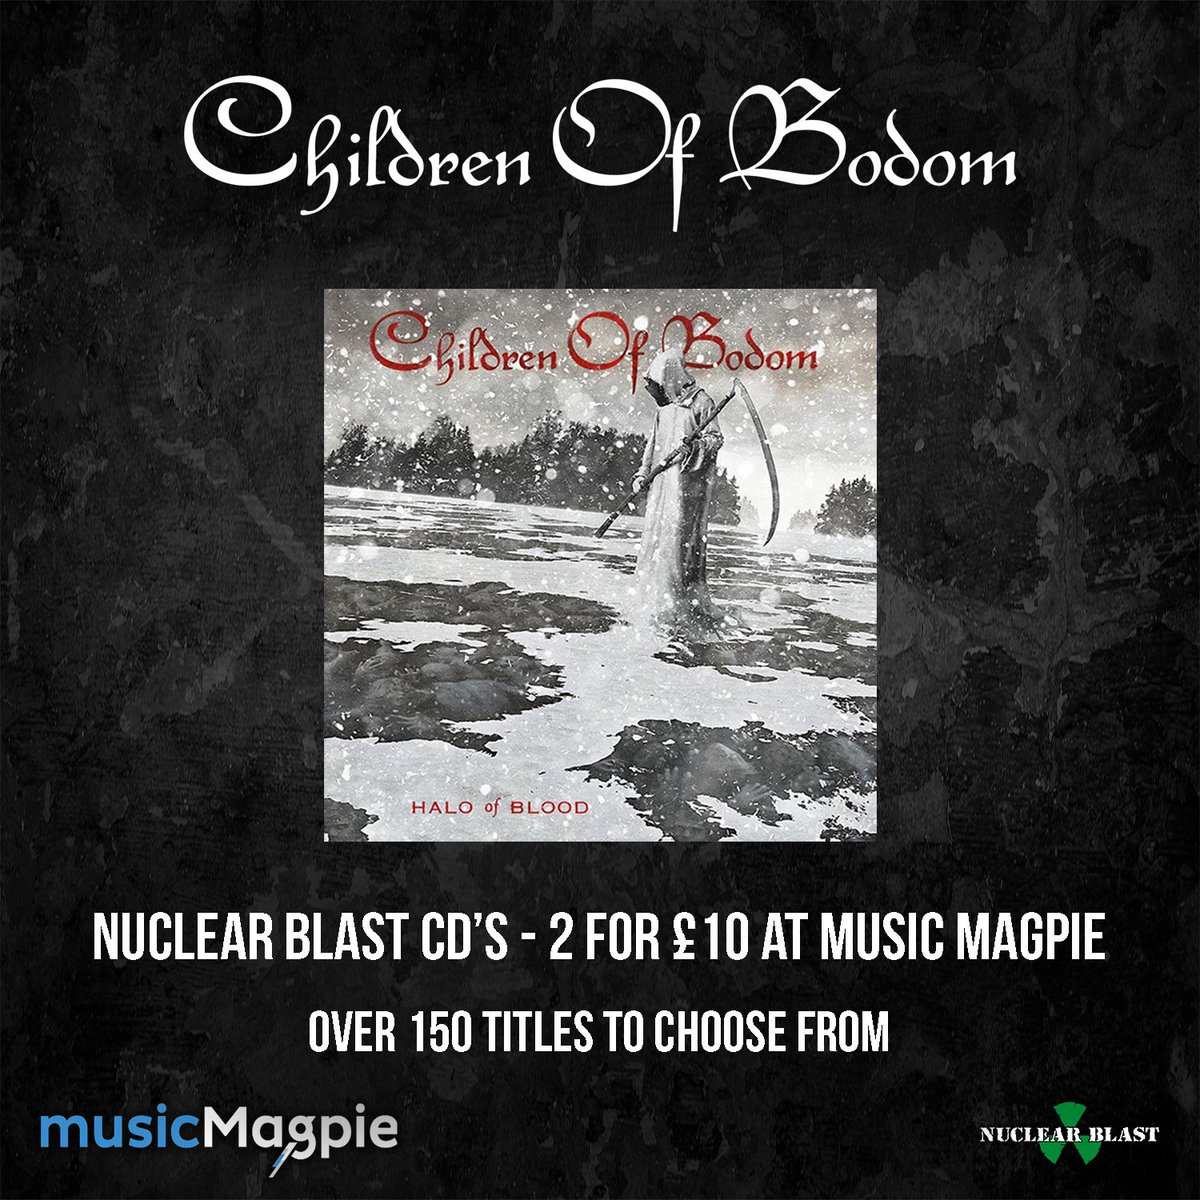 Pick up #HaloOfBlood in the Nuclear Blast x @musicMagpie 2 for £10 sale: https://t.co/EP56PQDhCu https://t.co/kXWuoiLnru